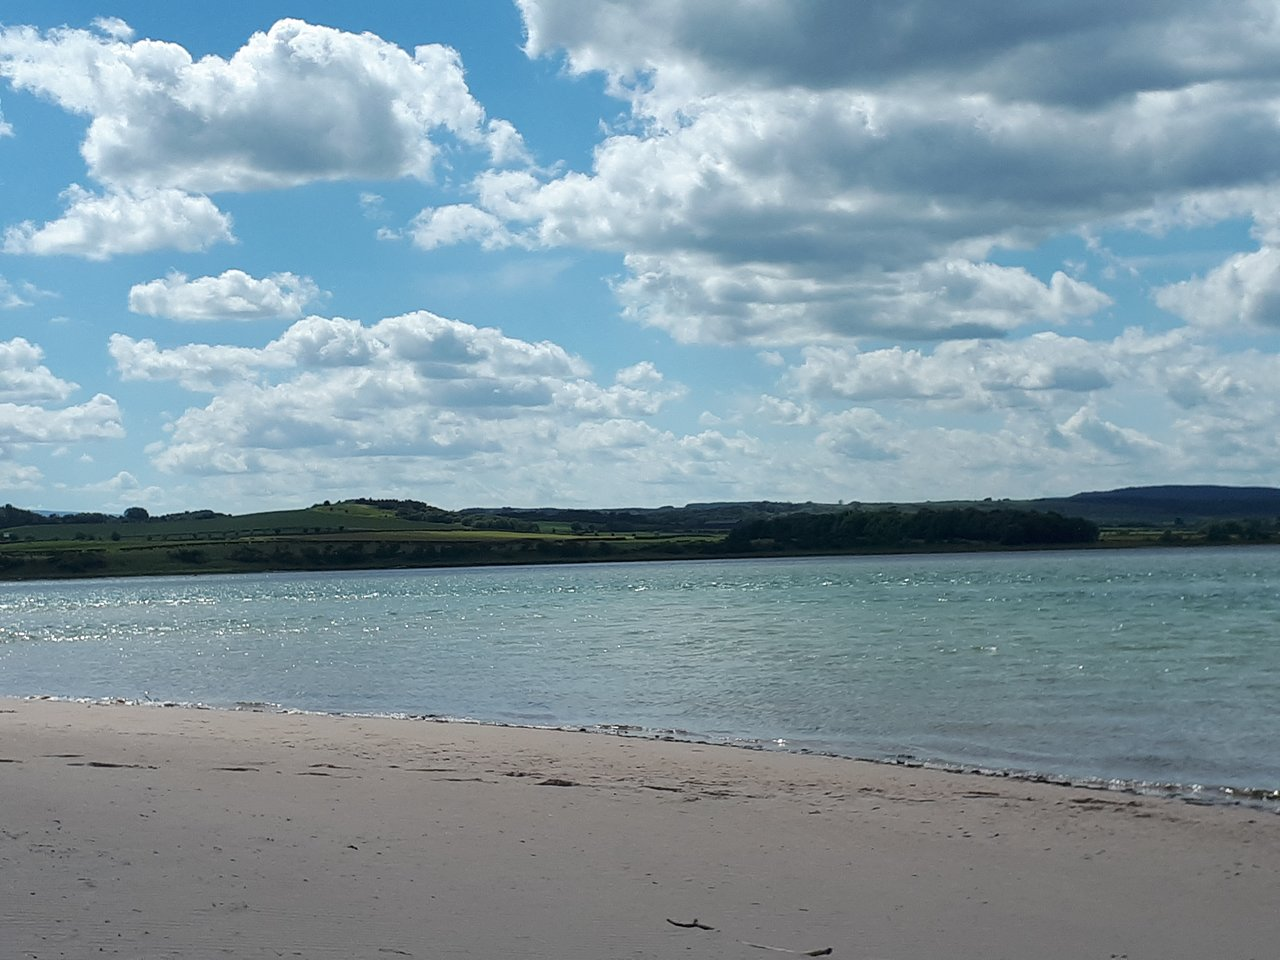 BUDLE BAY CAMPSITE - Prices & Campground Reviews (Waren Mill